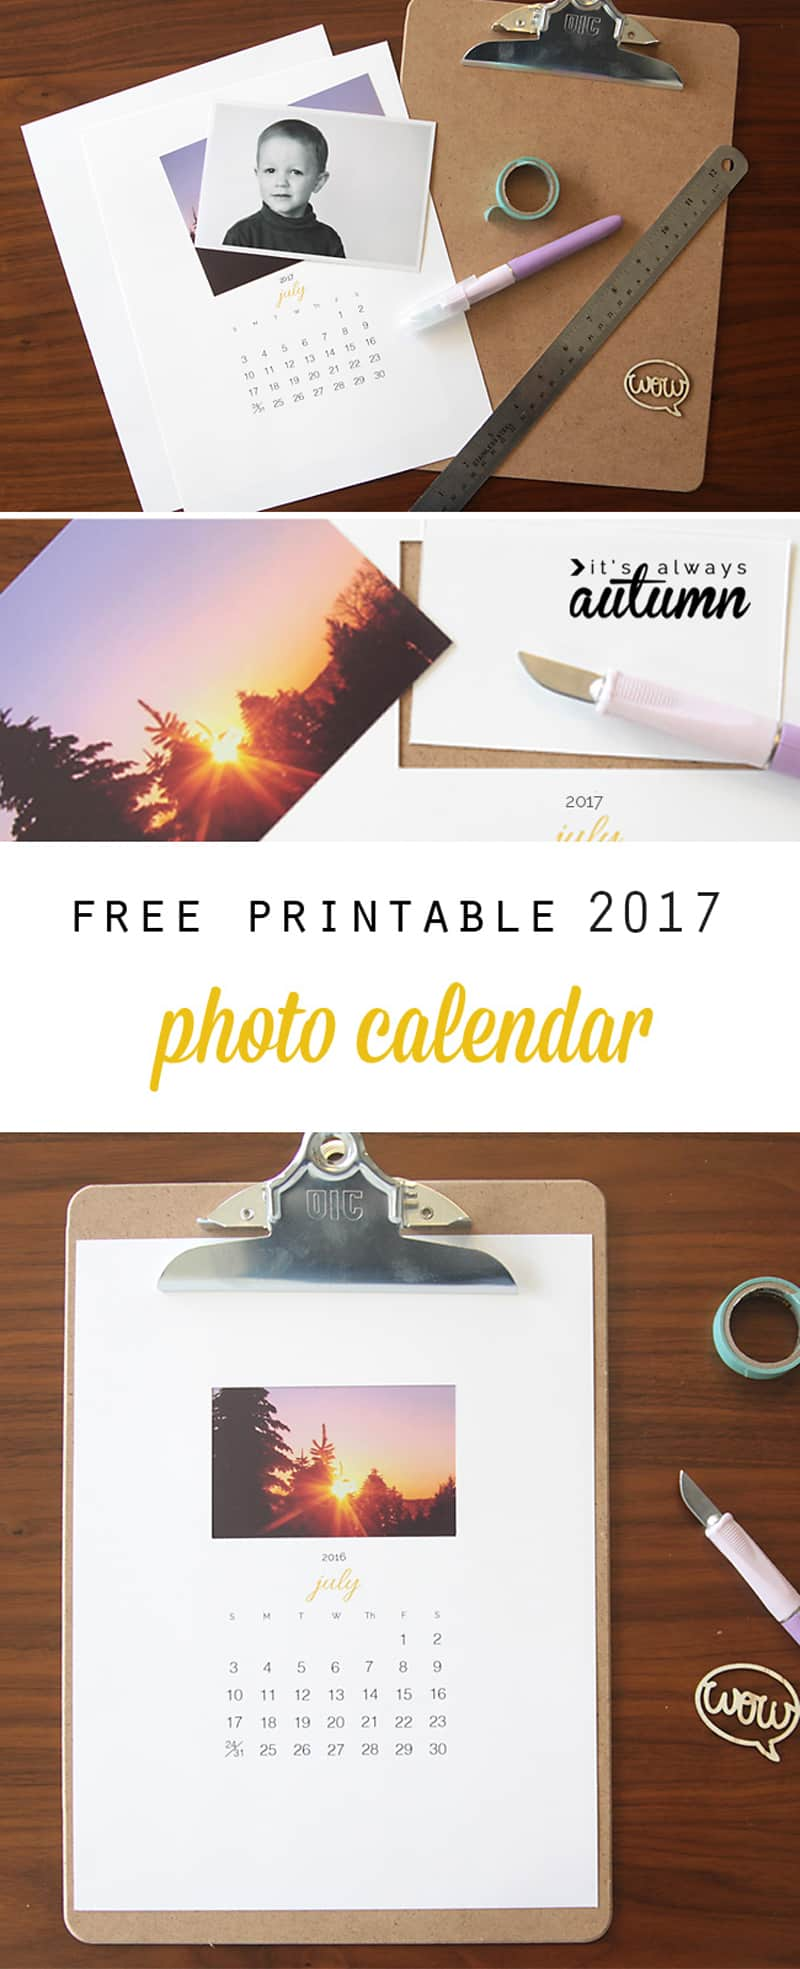 DIY photo calendar - FREE printable